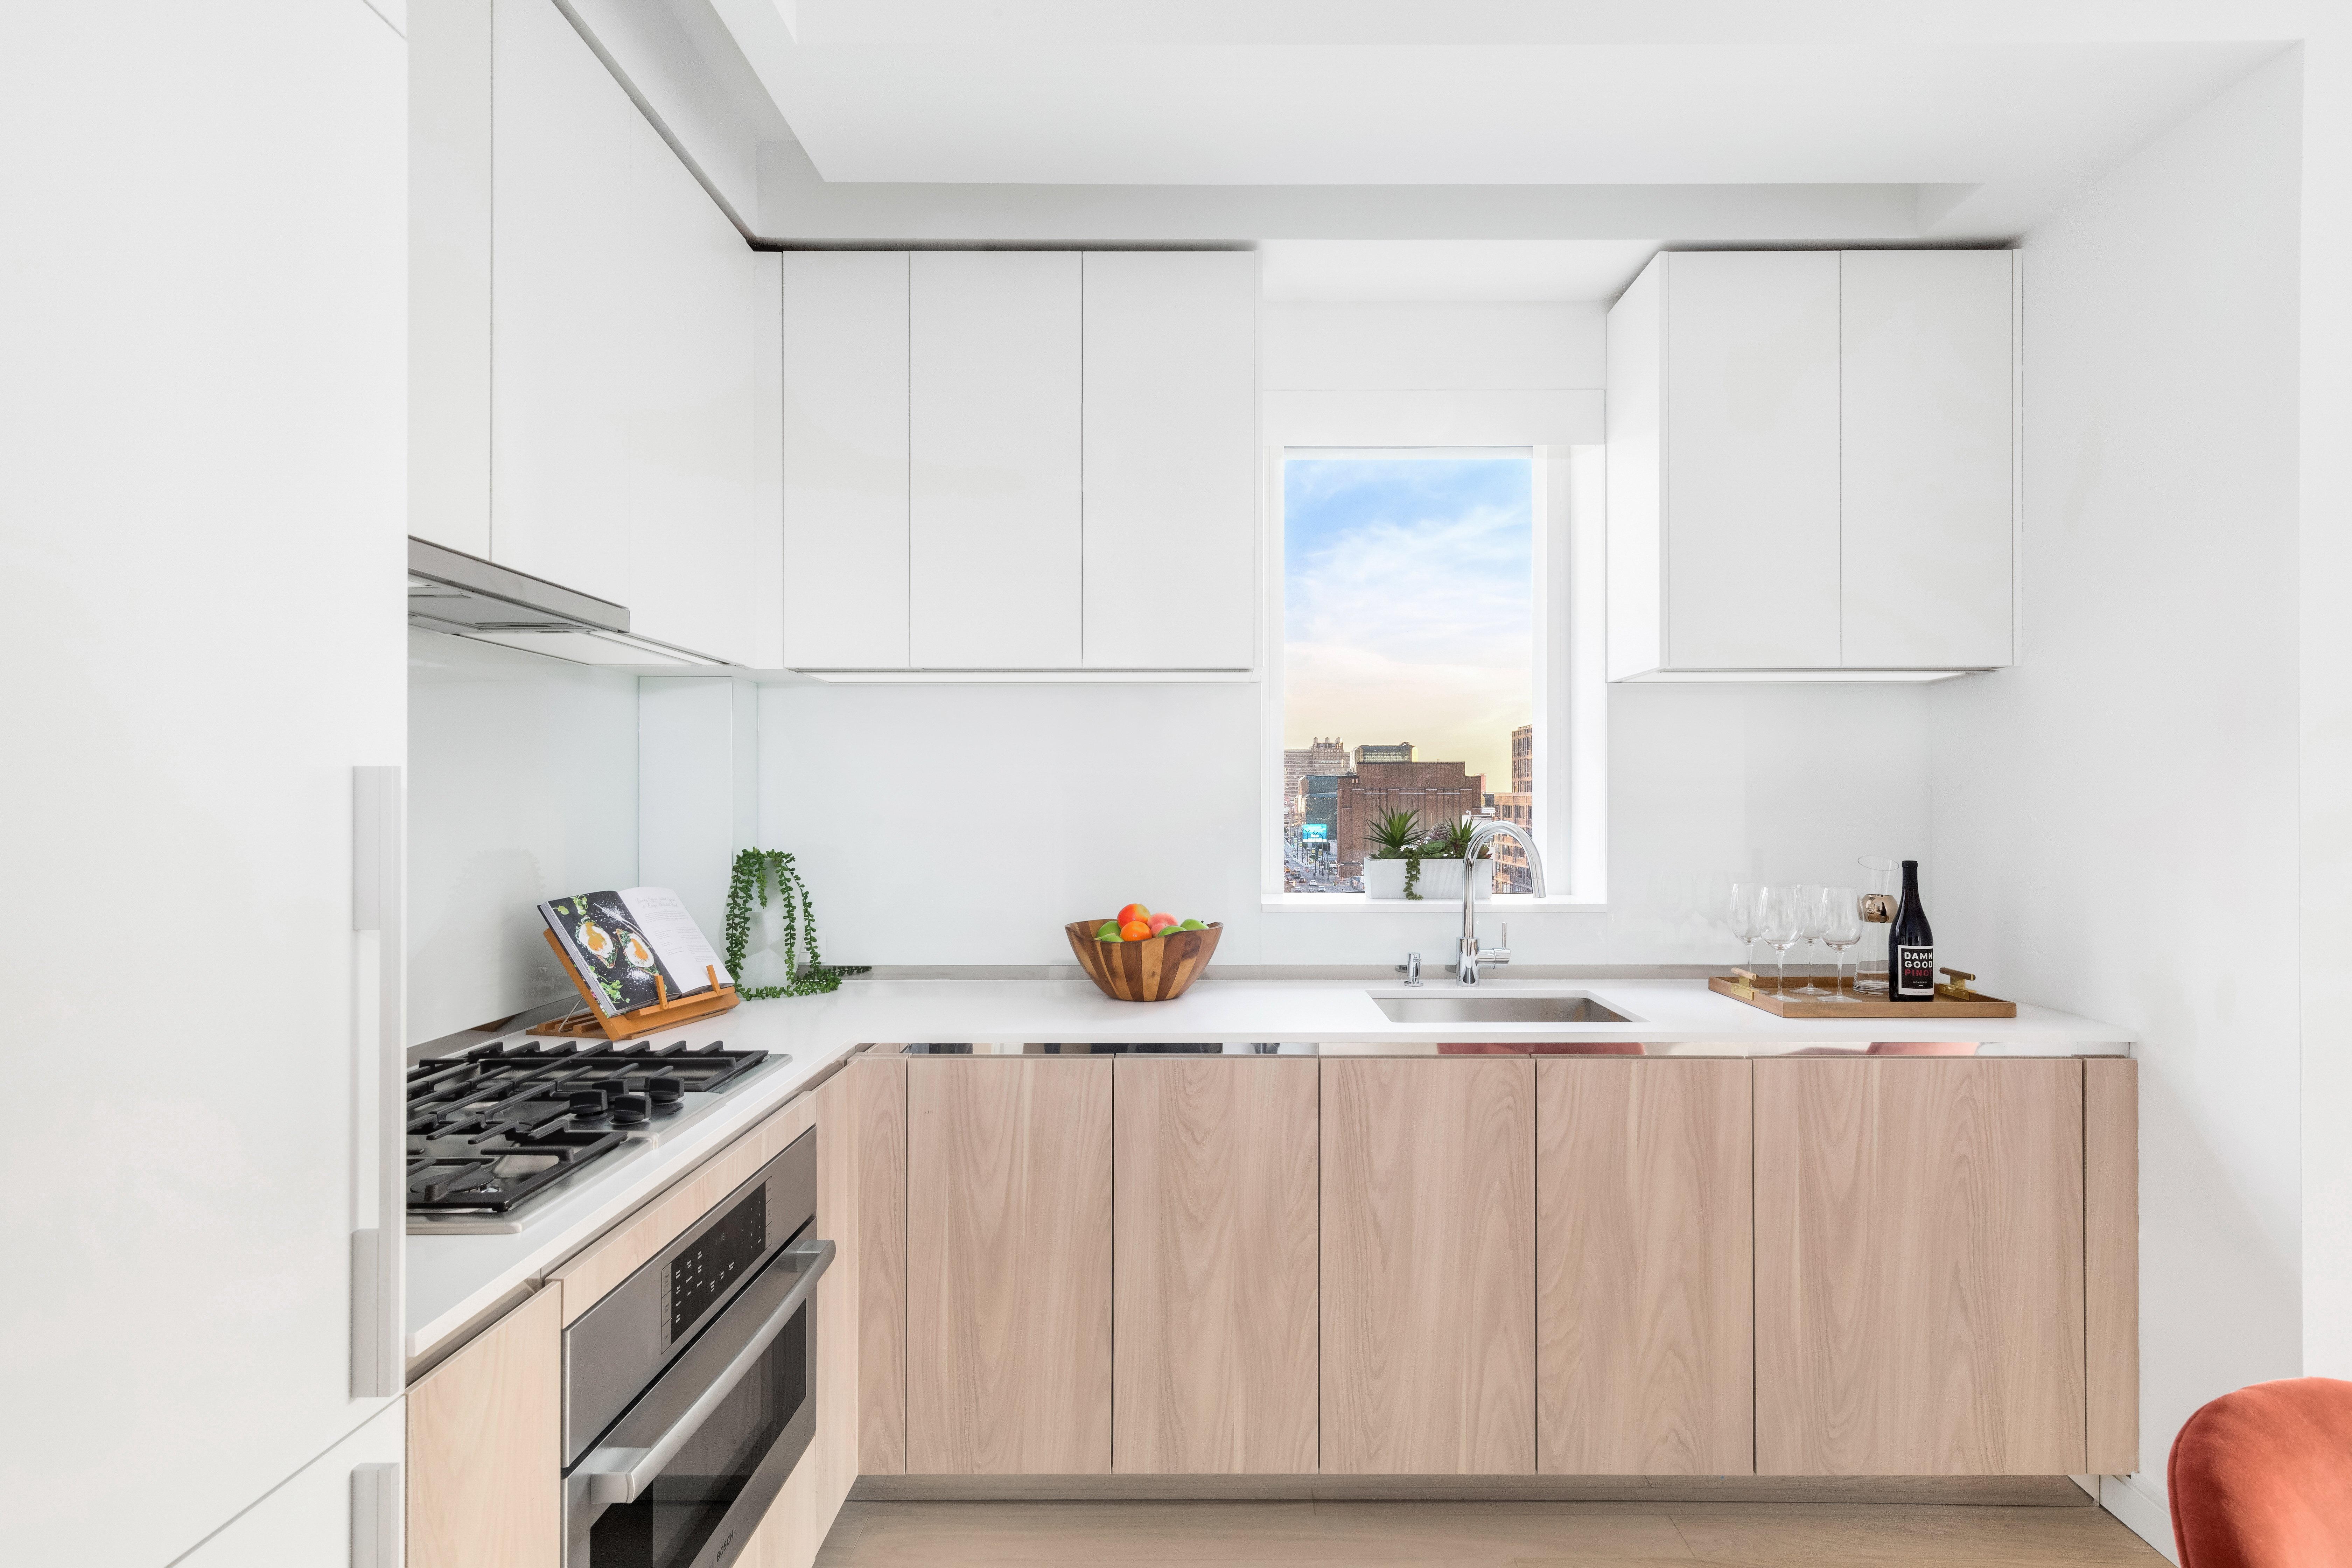 primary photo for 572 Eleventh Avenue 11-C, New York, NY 10018, US